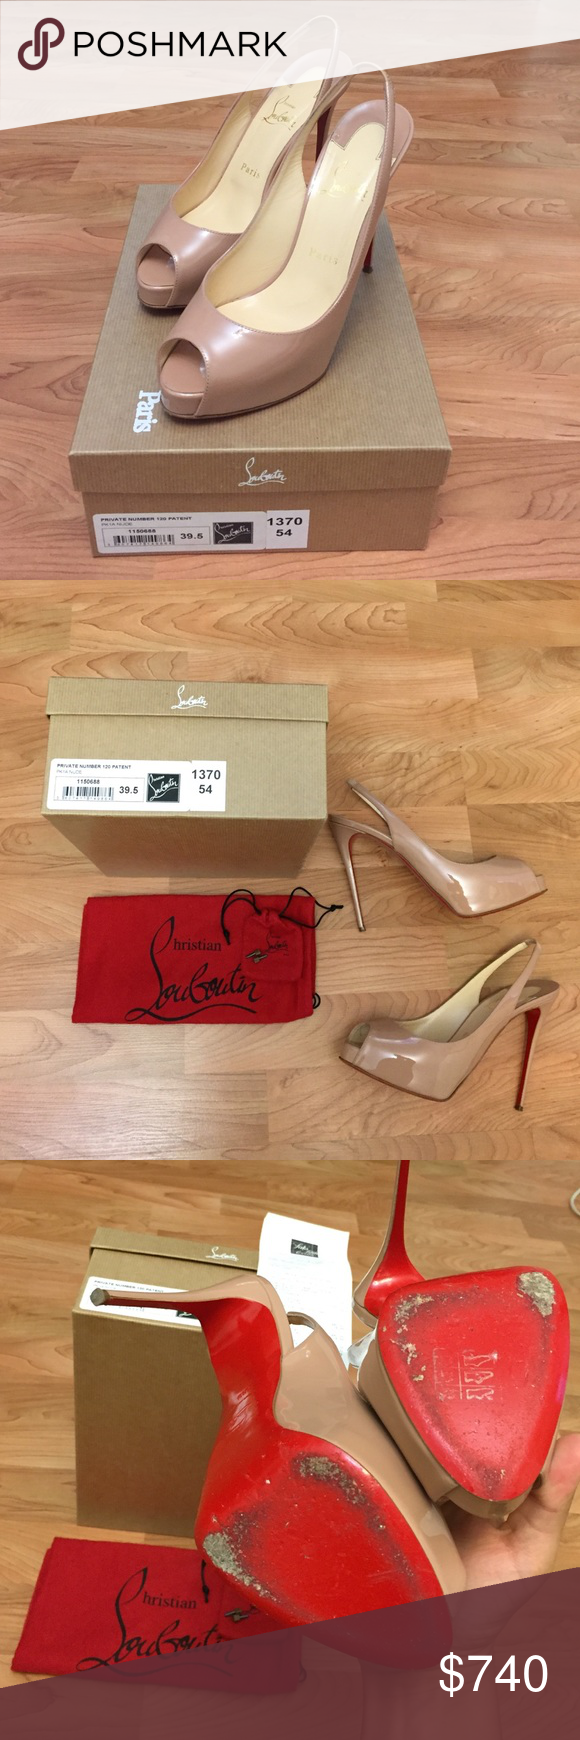 Private number 120 patent nude color Been worn about 2-3 times. No scratches on the shoes. Come as shown, with the original box, dust bag, extra heel taps and the original receipt. Were purchased in April 2016 at Saks Fifth New York $845.00 +tax Christian Louboutin Shoes Platforms